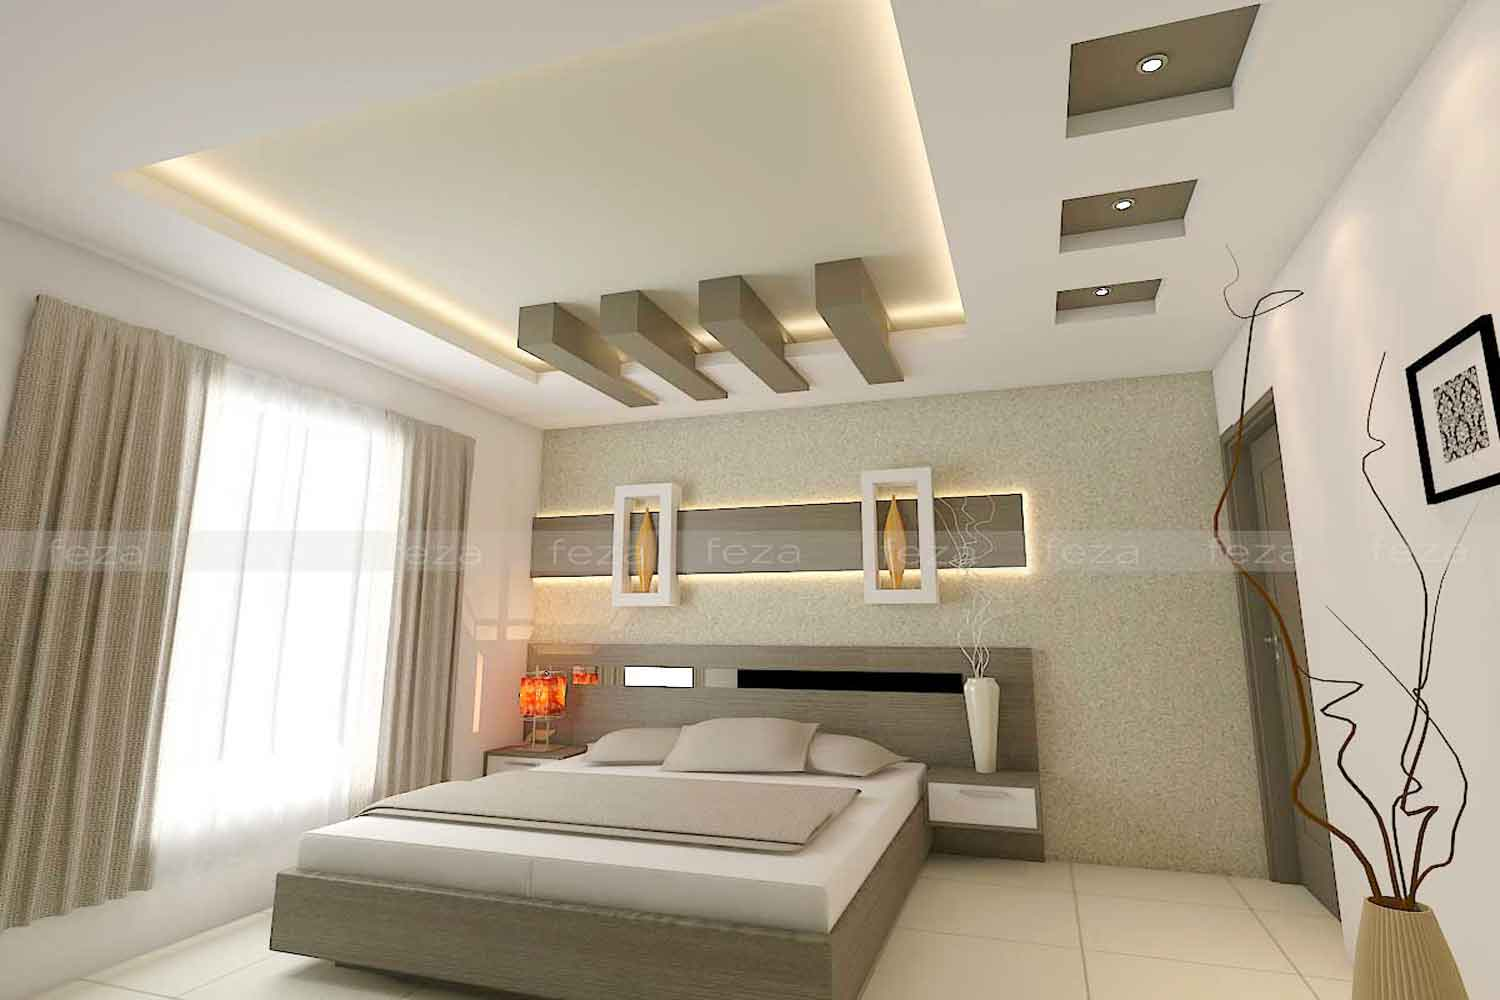 Home interior design companies in kerala home review co for Home interior company